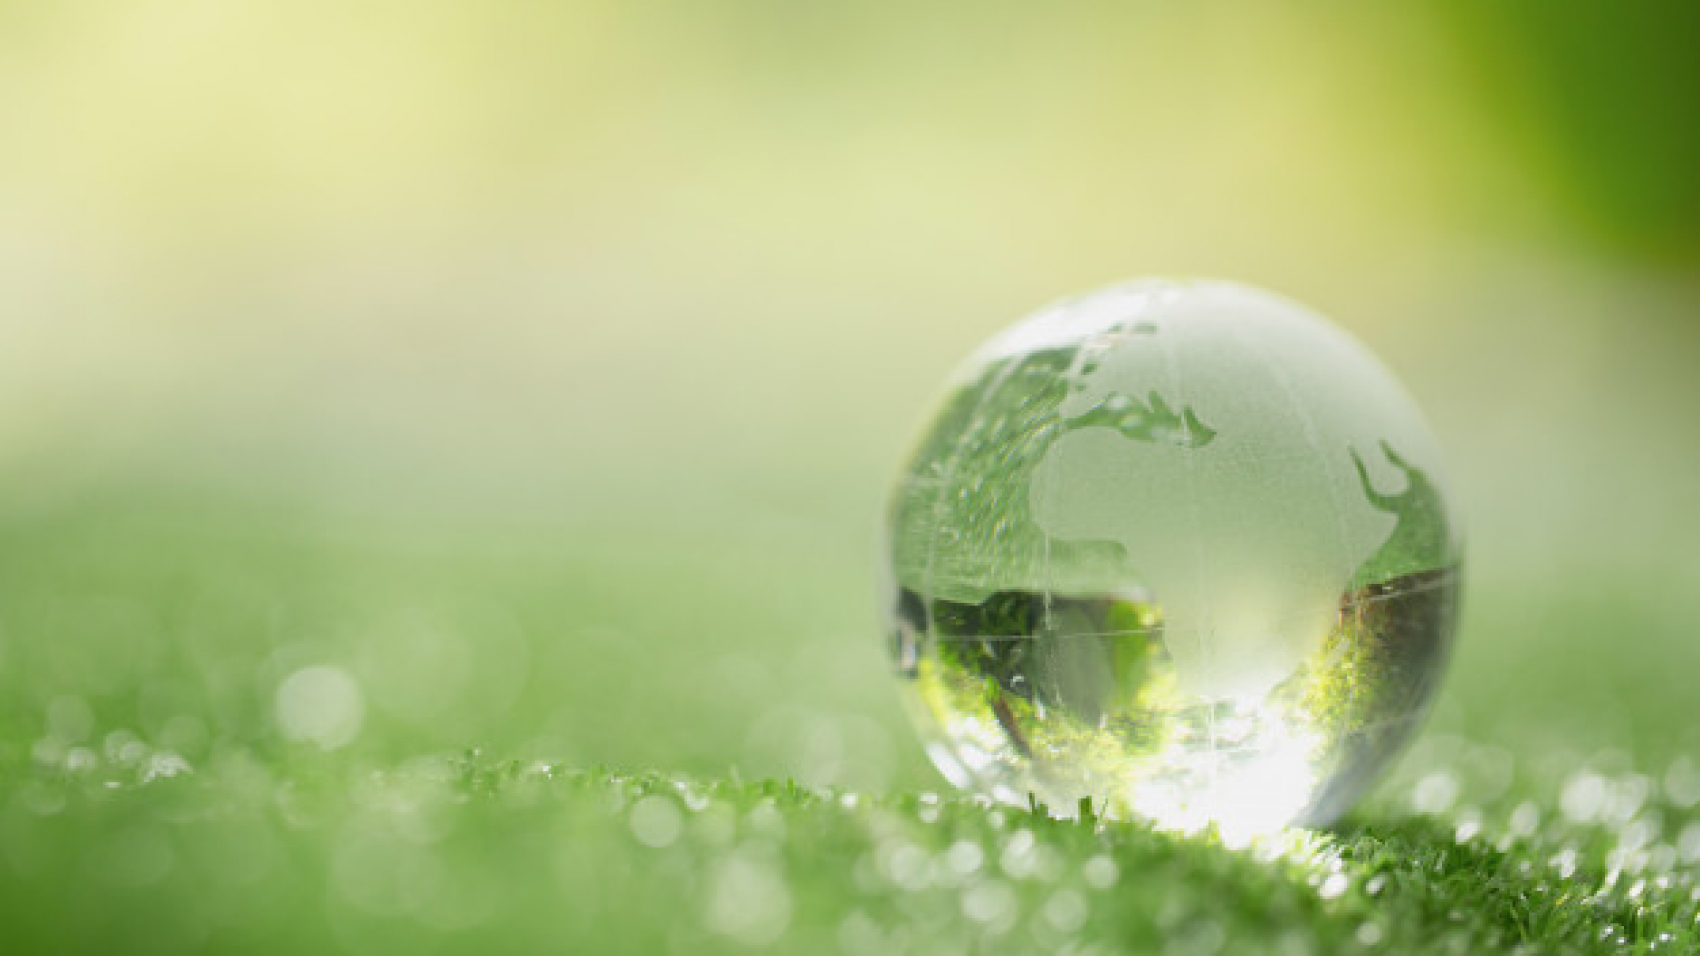 close-up-of-crystal-globe-resting-on-grass-in-a-forest_1150-12730